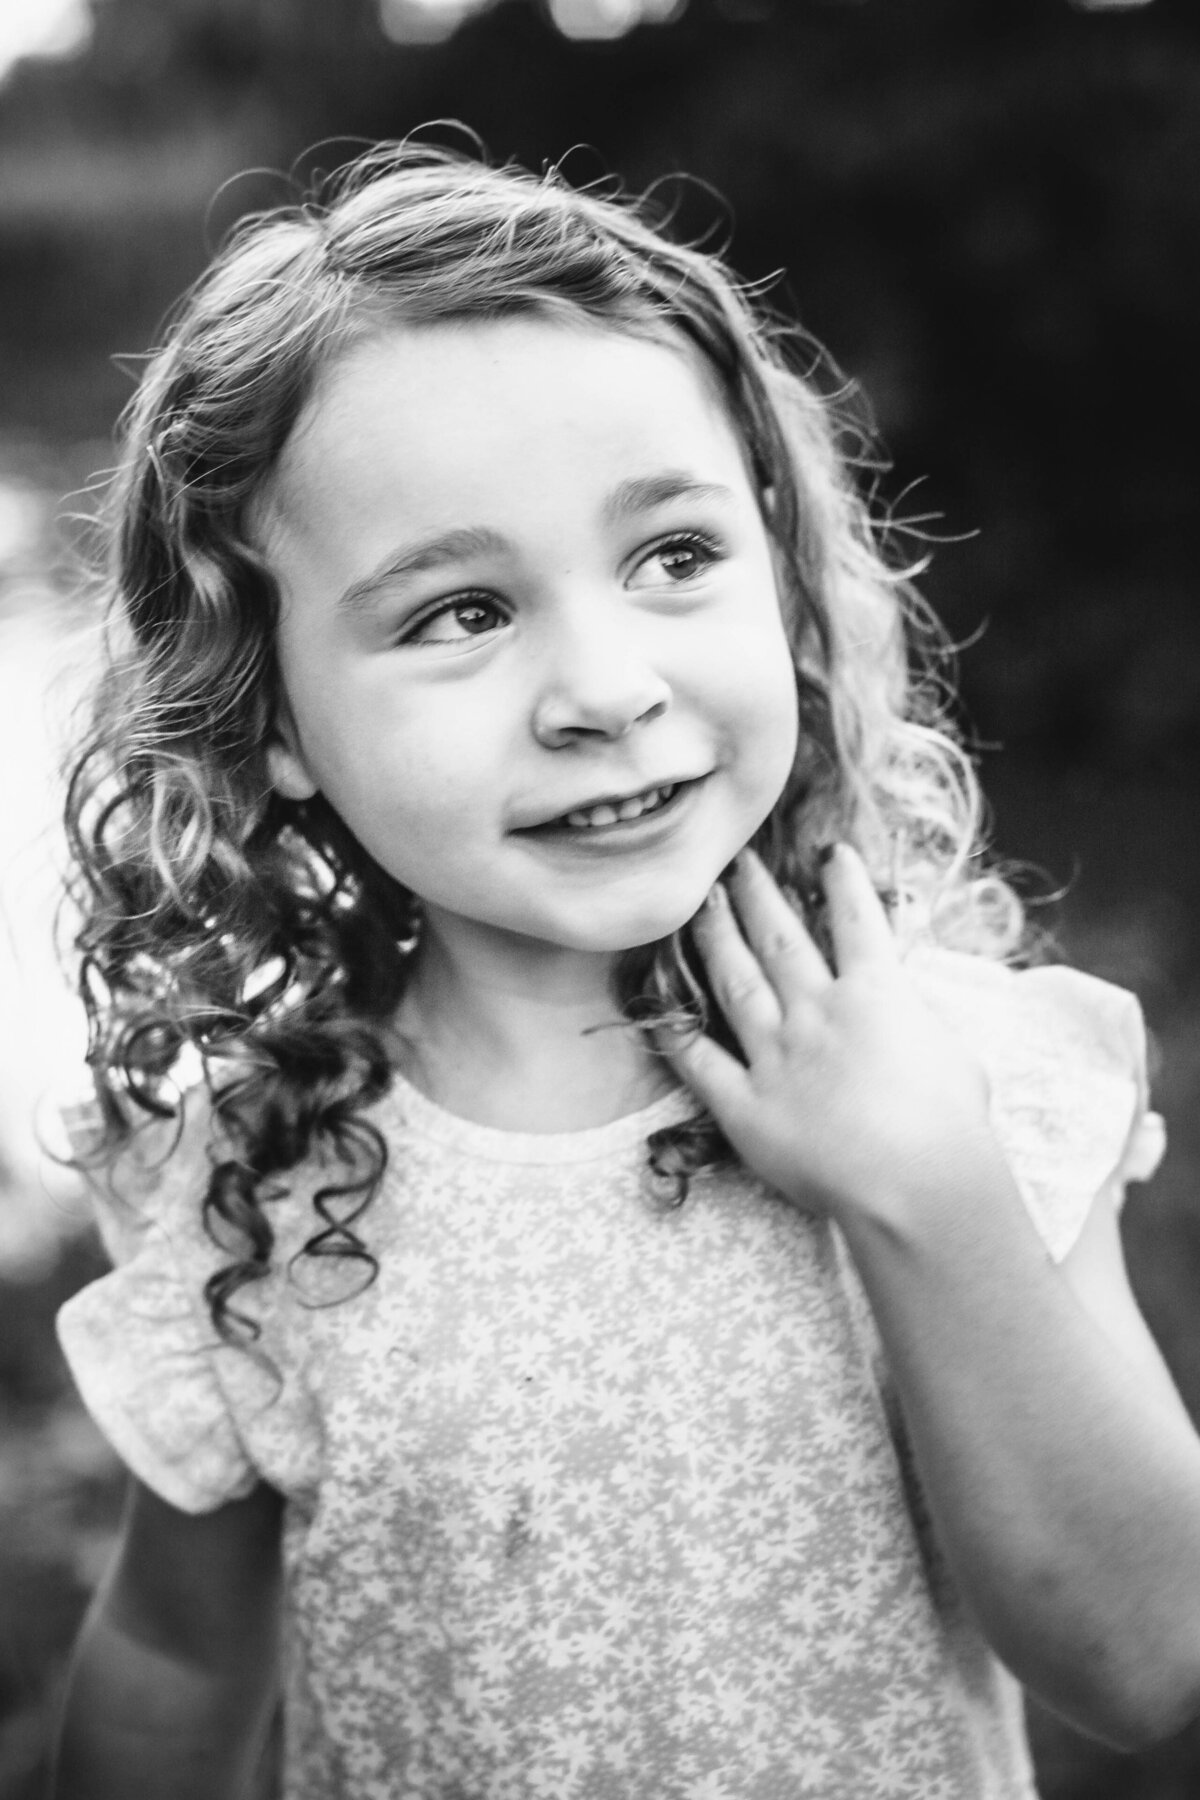 portrait of a girl in black and white gazing up with amazing curly hair